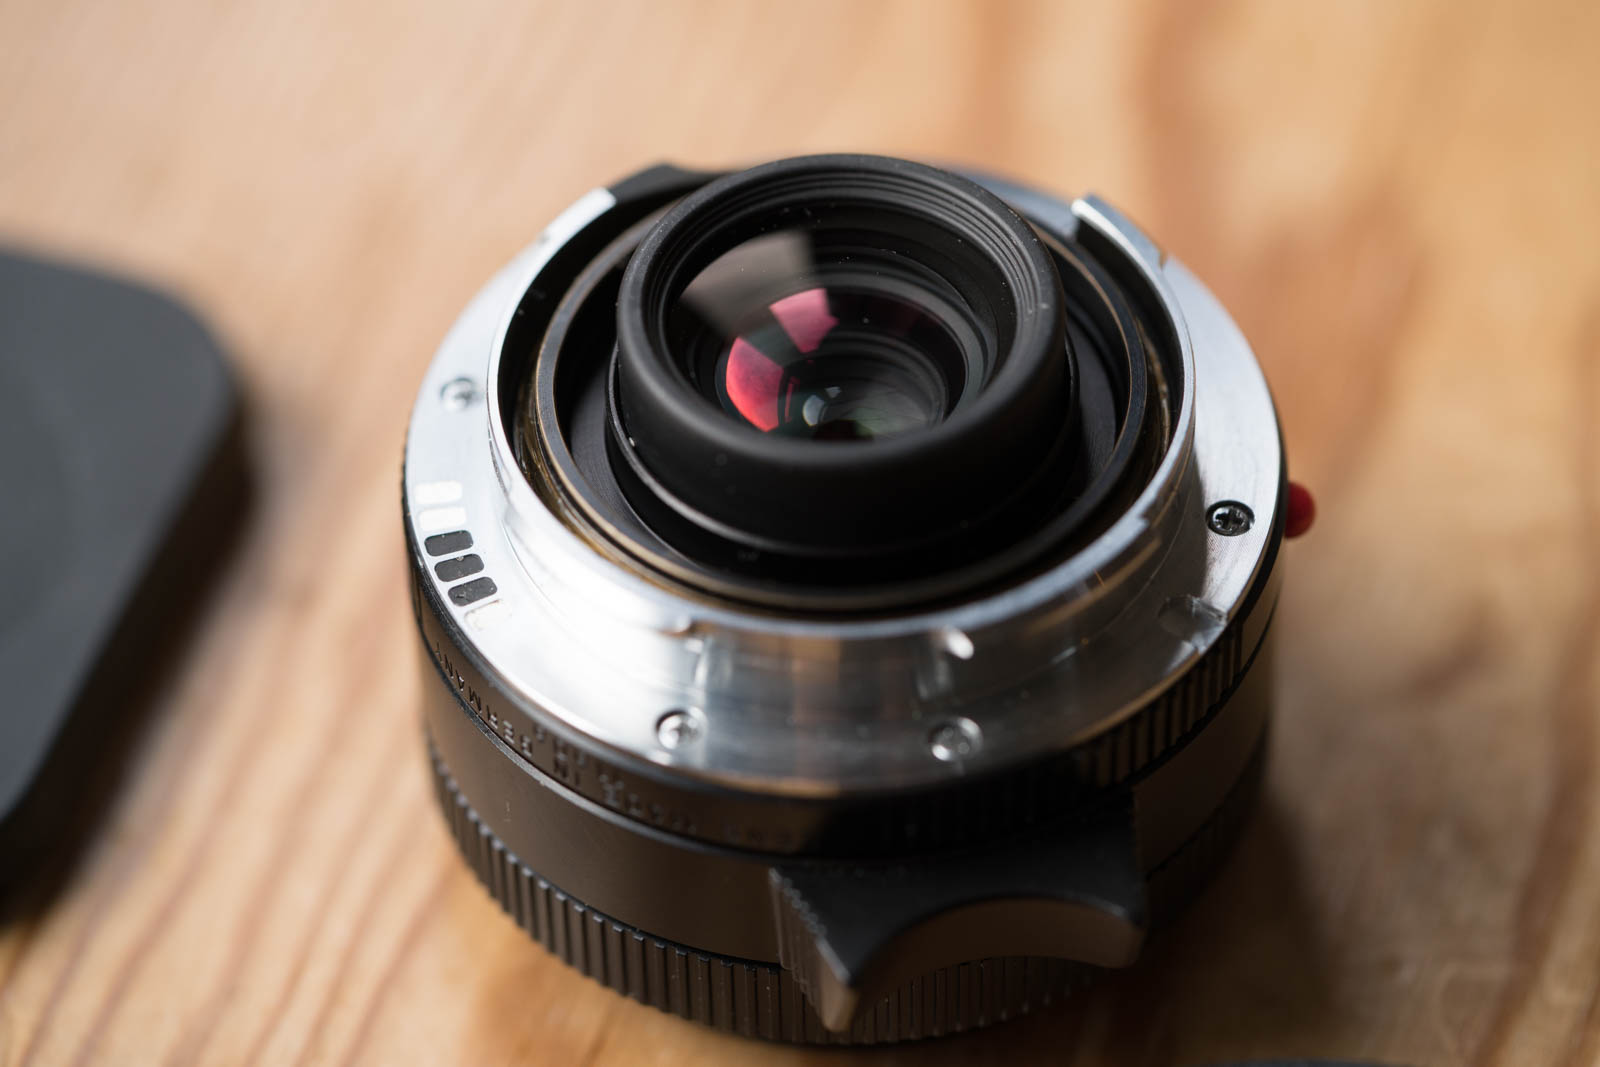 The Leica 28mm Elmarit-M ASPH - one of the best lenses I've ever